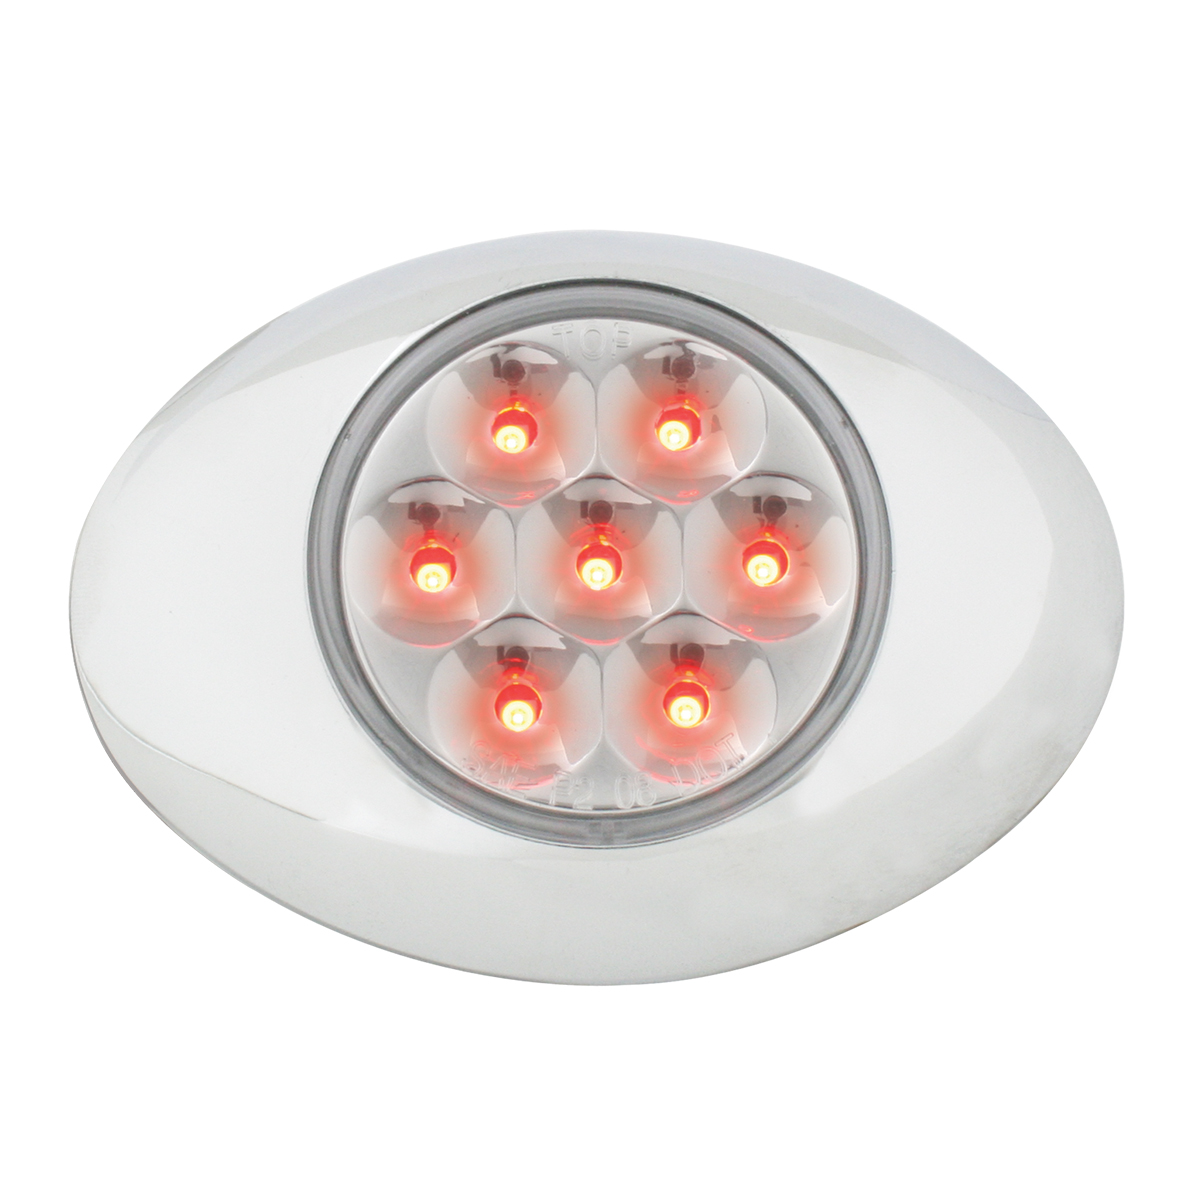 Small Pearl LED Light in Red/Clear with Chrome Bezel